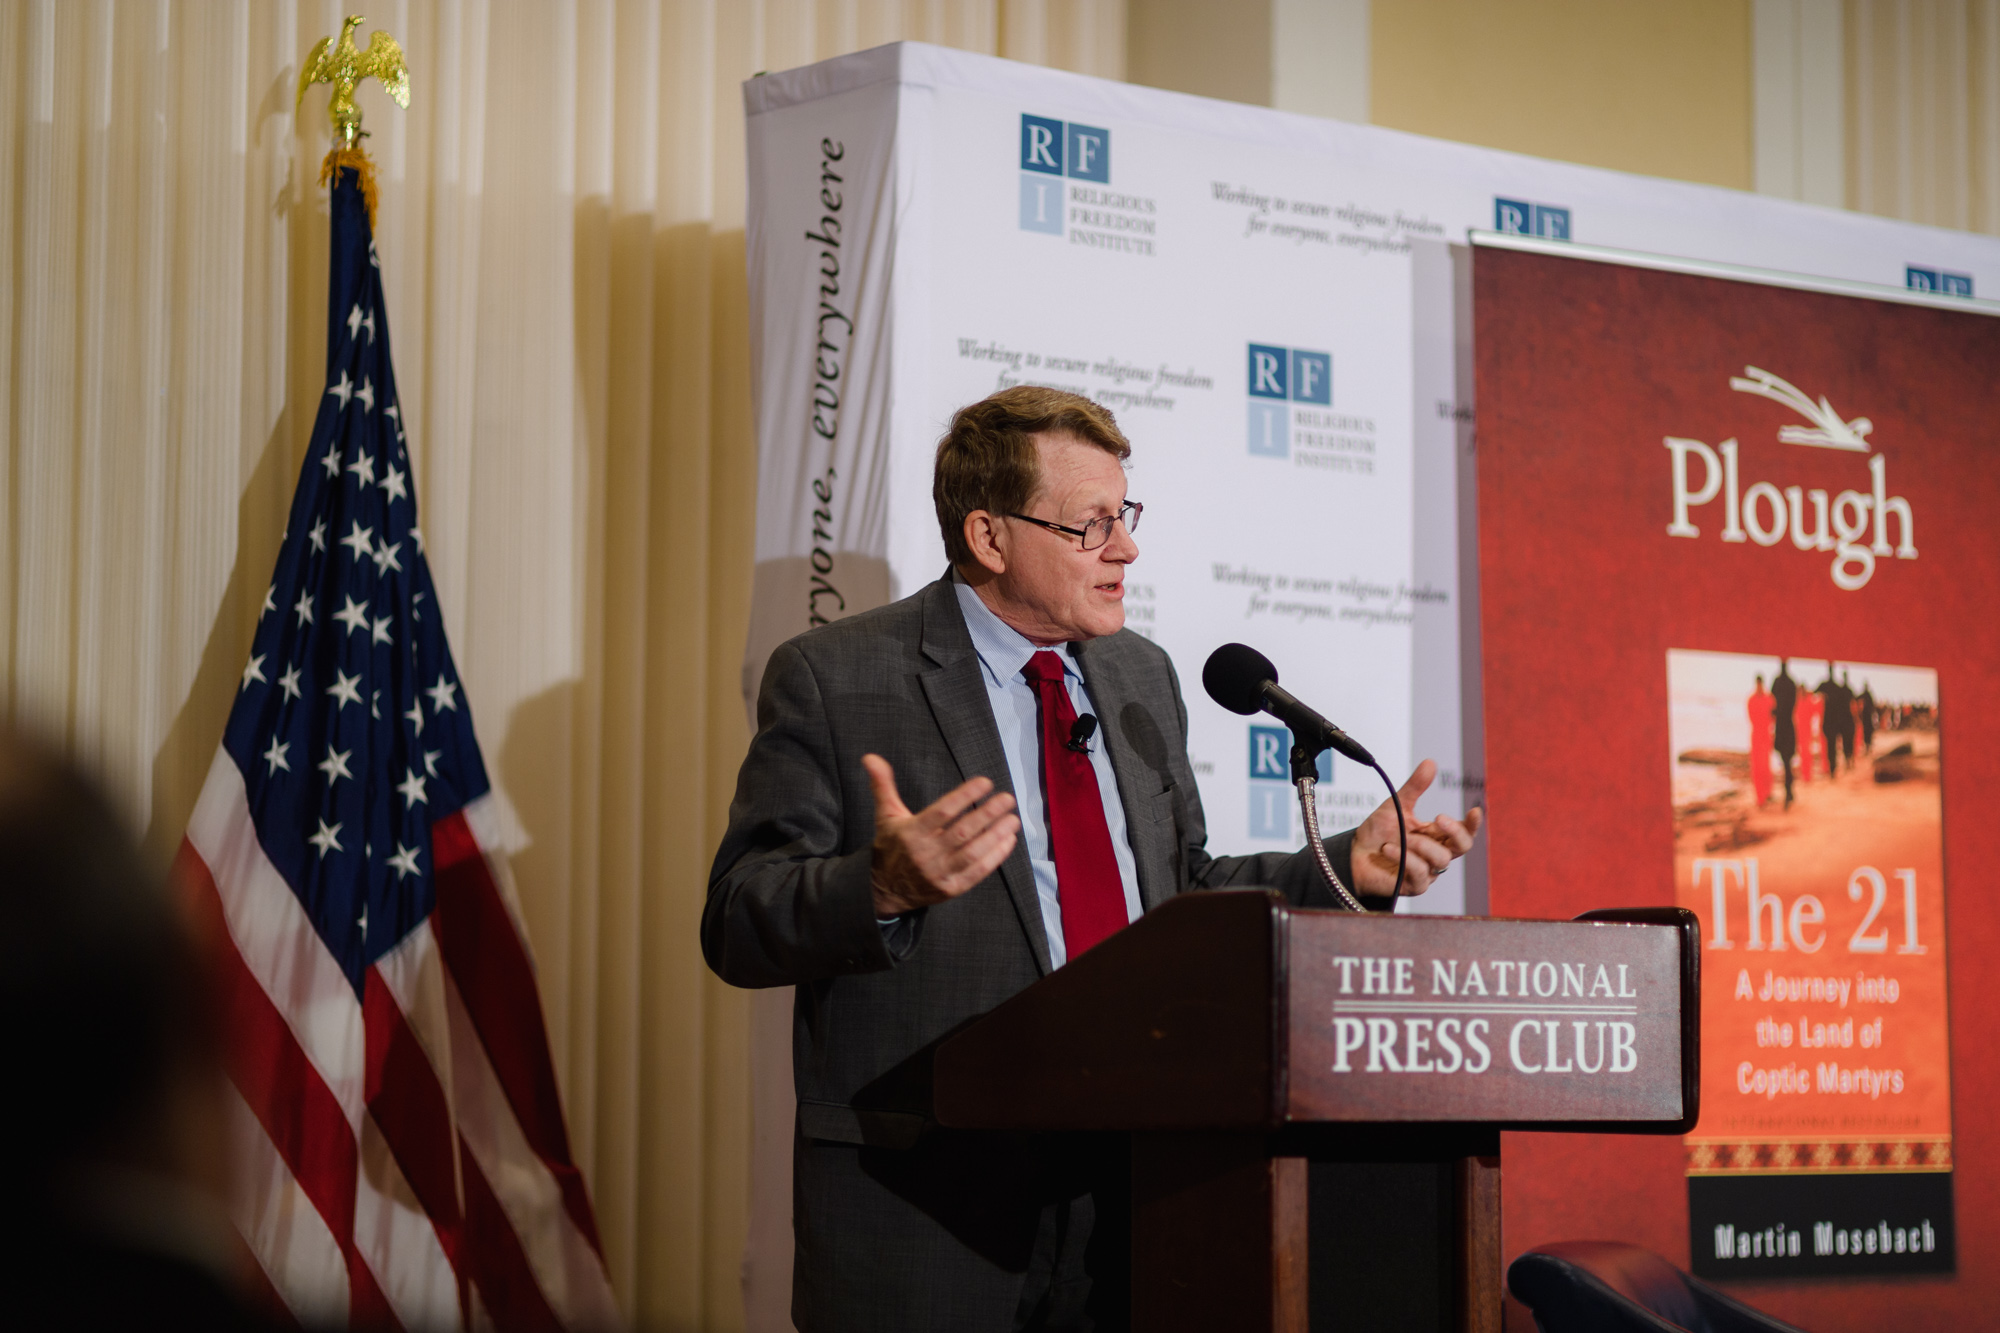 022 - February 12th 2019 Religious Freedom Institute at National Press Club - Photo Nathan Mitchell.jpg